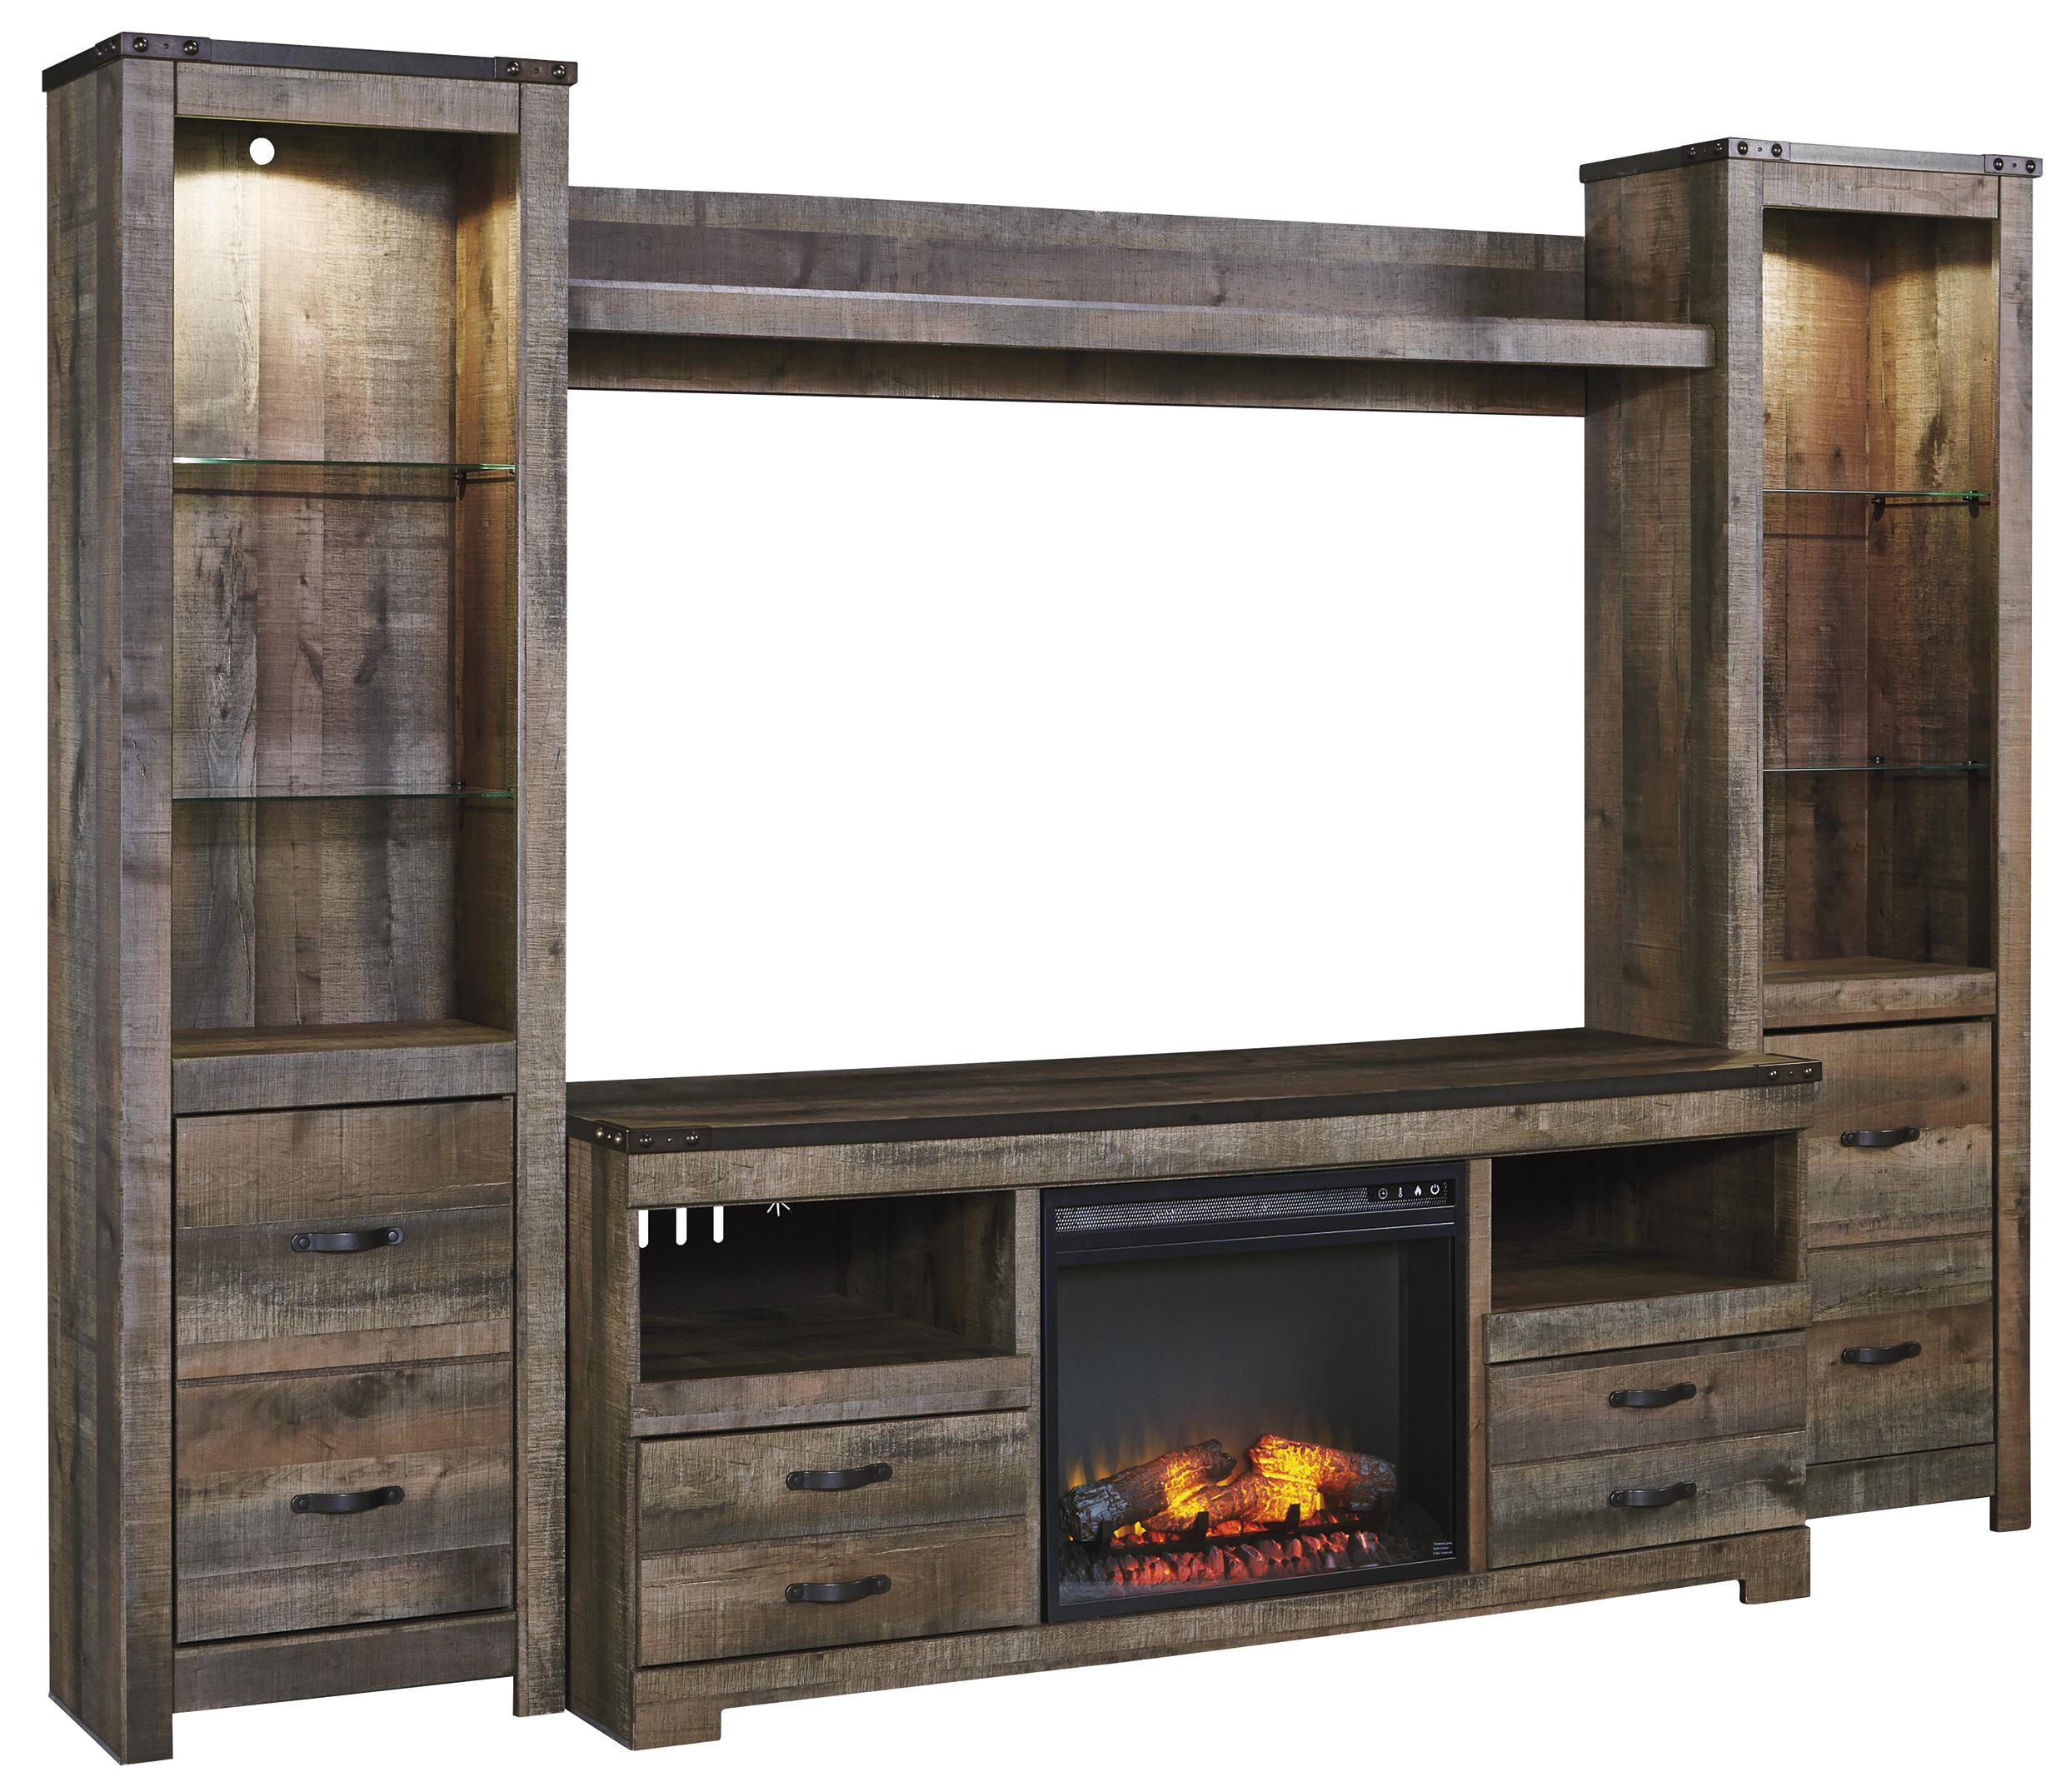 rustic large tv stand w fireplace insert 2 tall piers u0026 bridge